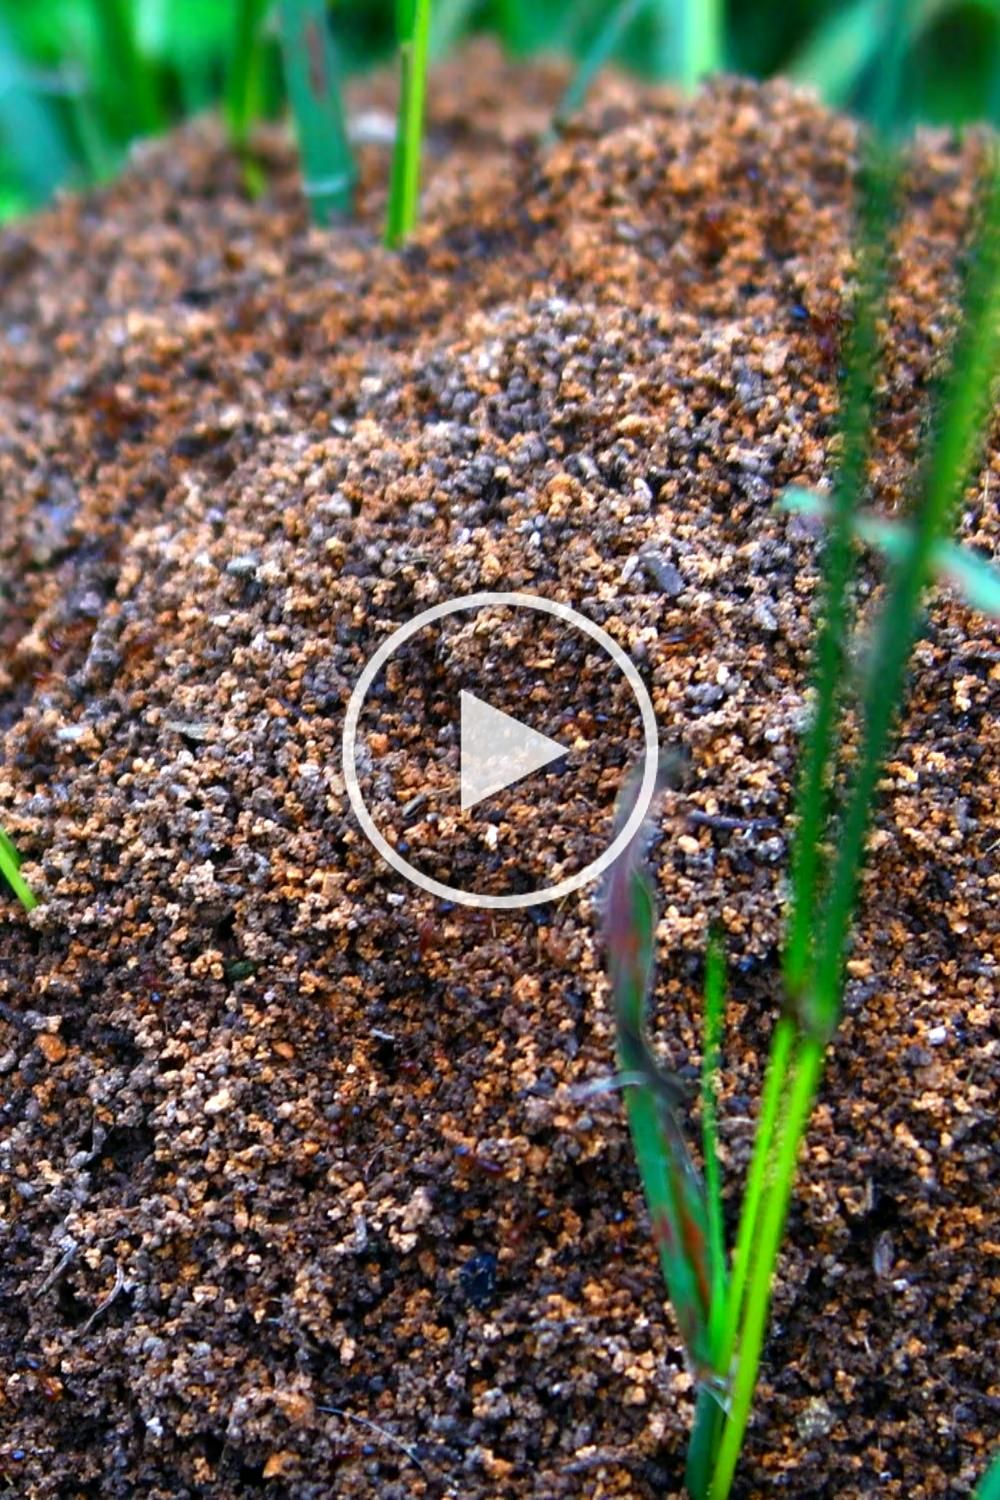 Fire ants taking over your lawn overn out will take care